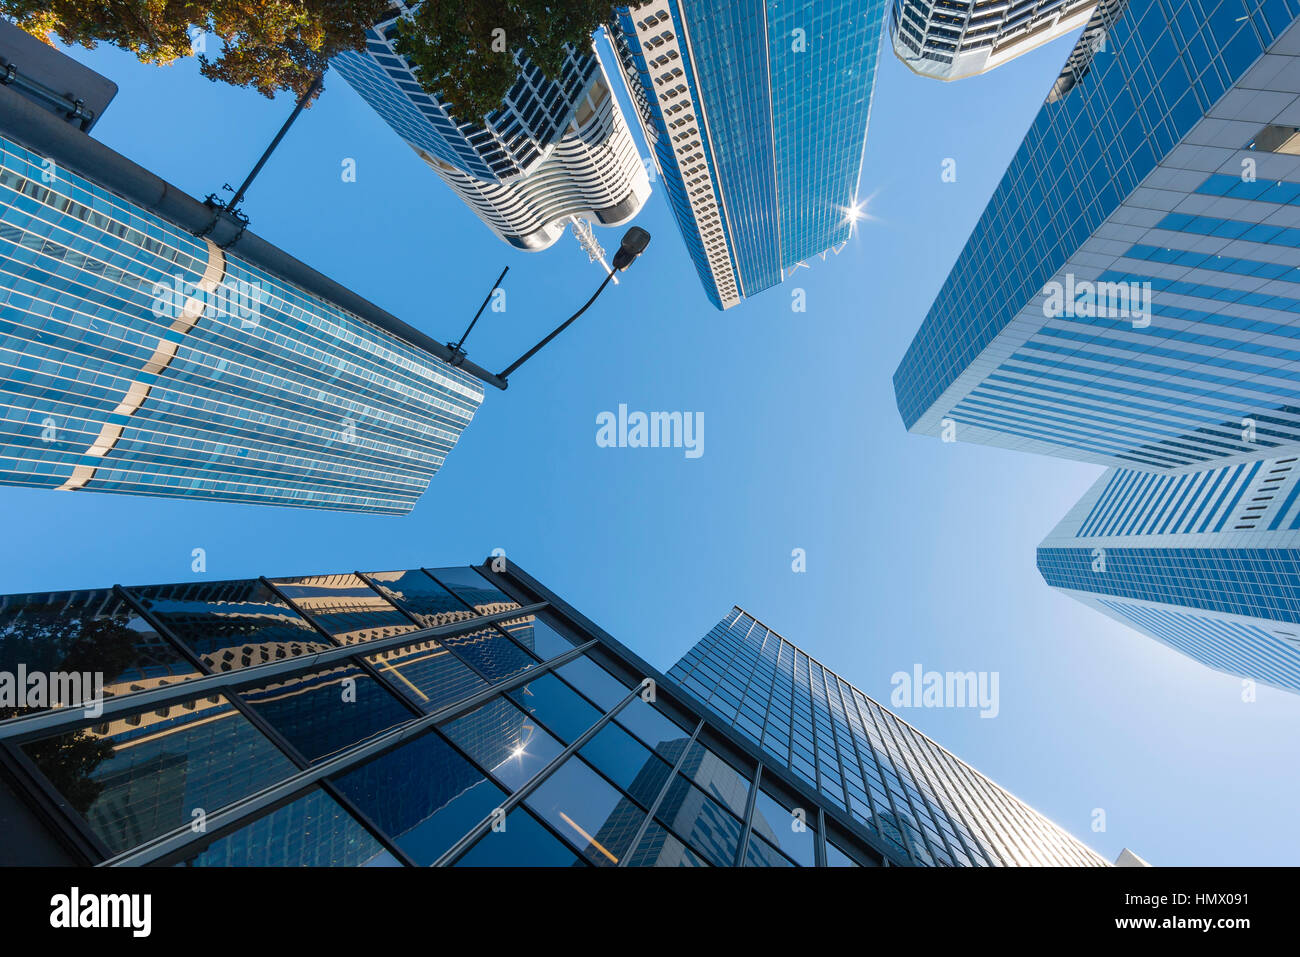 Modern skyscrapers and blue sky - Stock Image